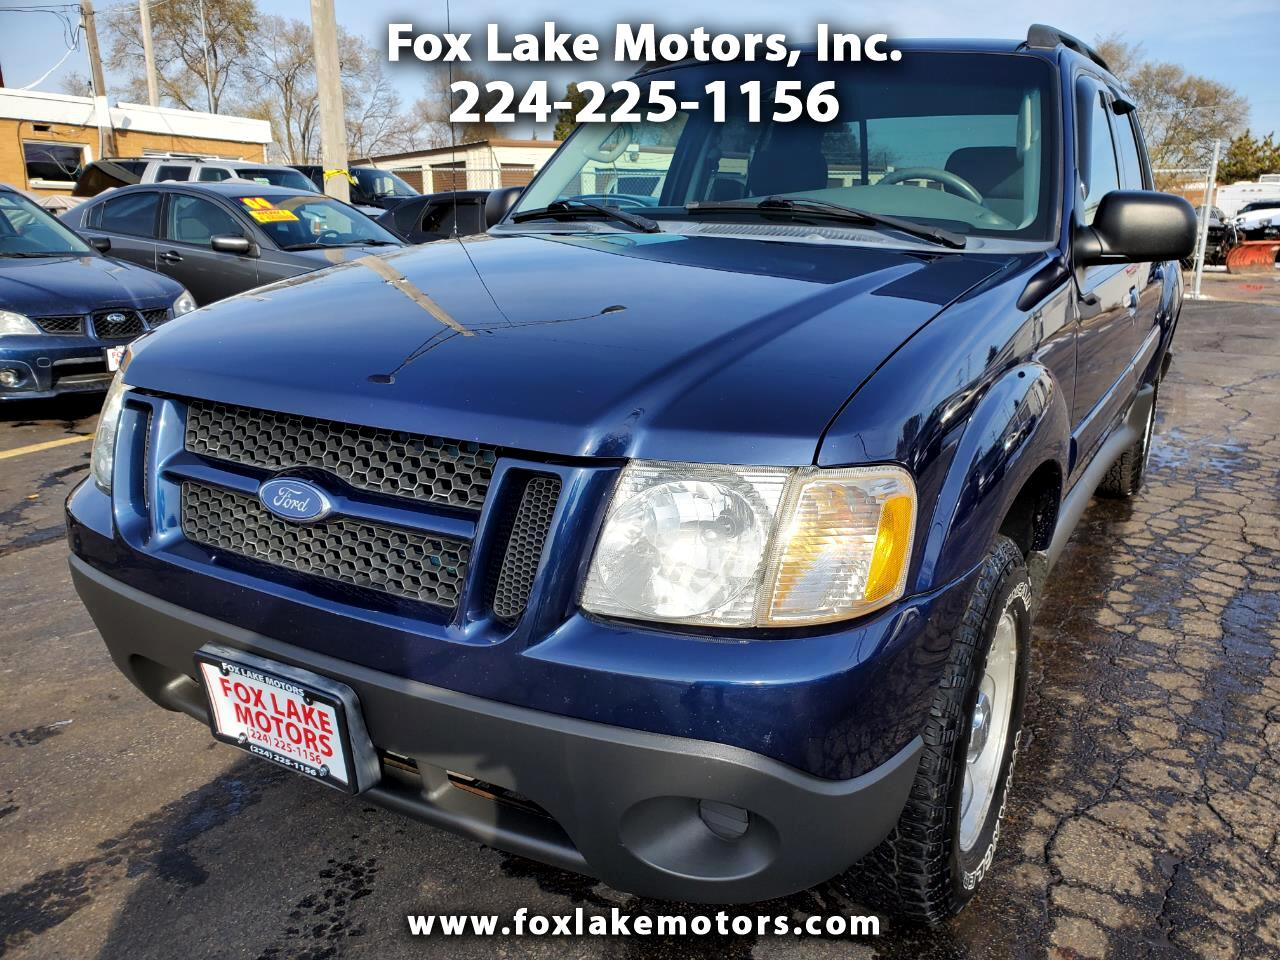 Ford Explorer Sport Trac XLT 4WD 2005